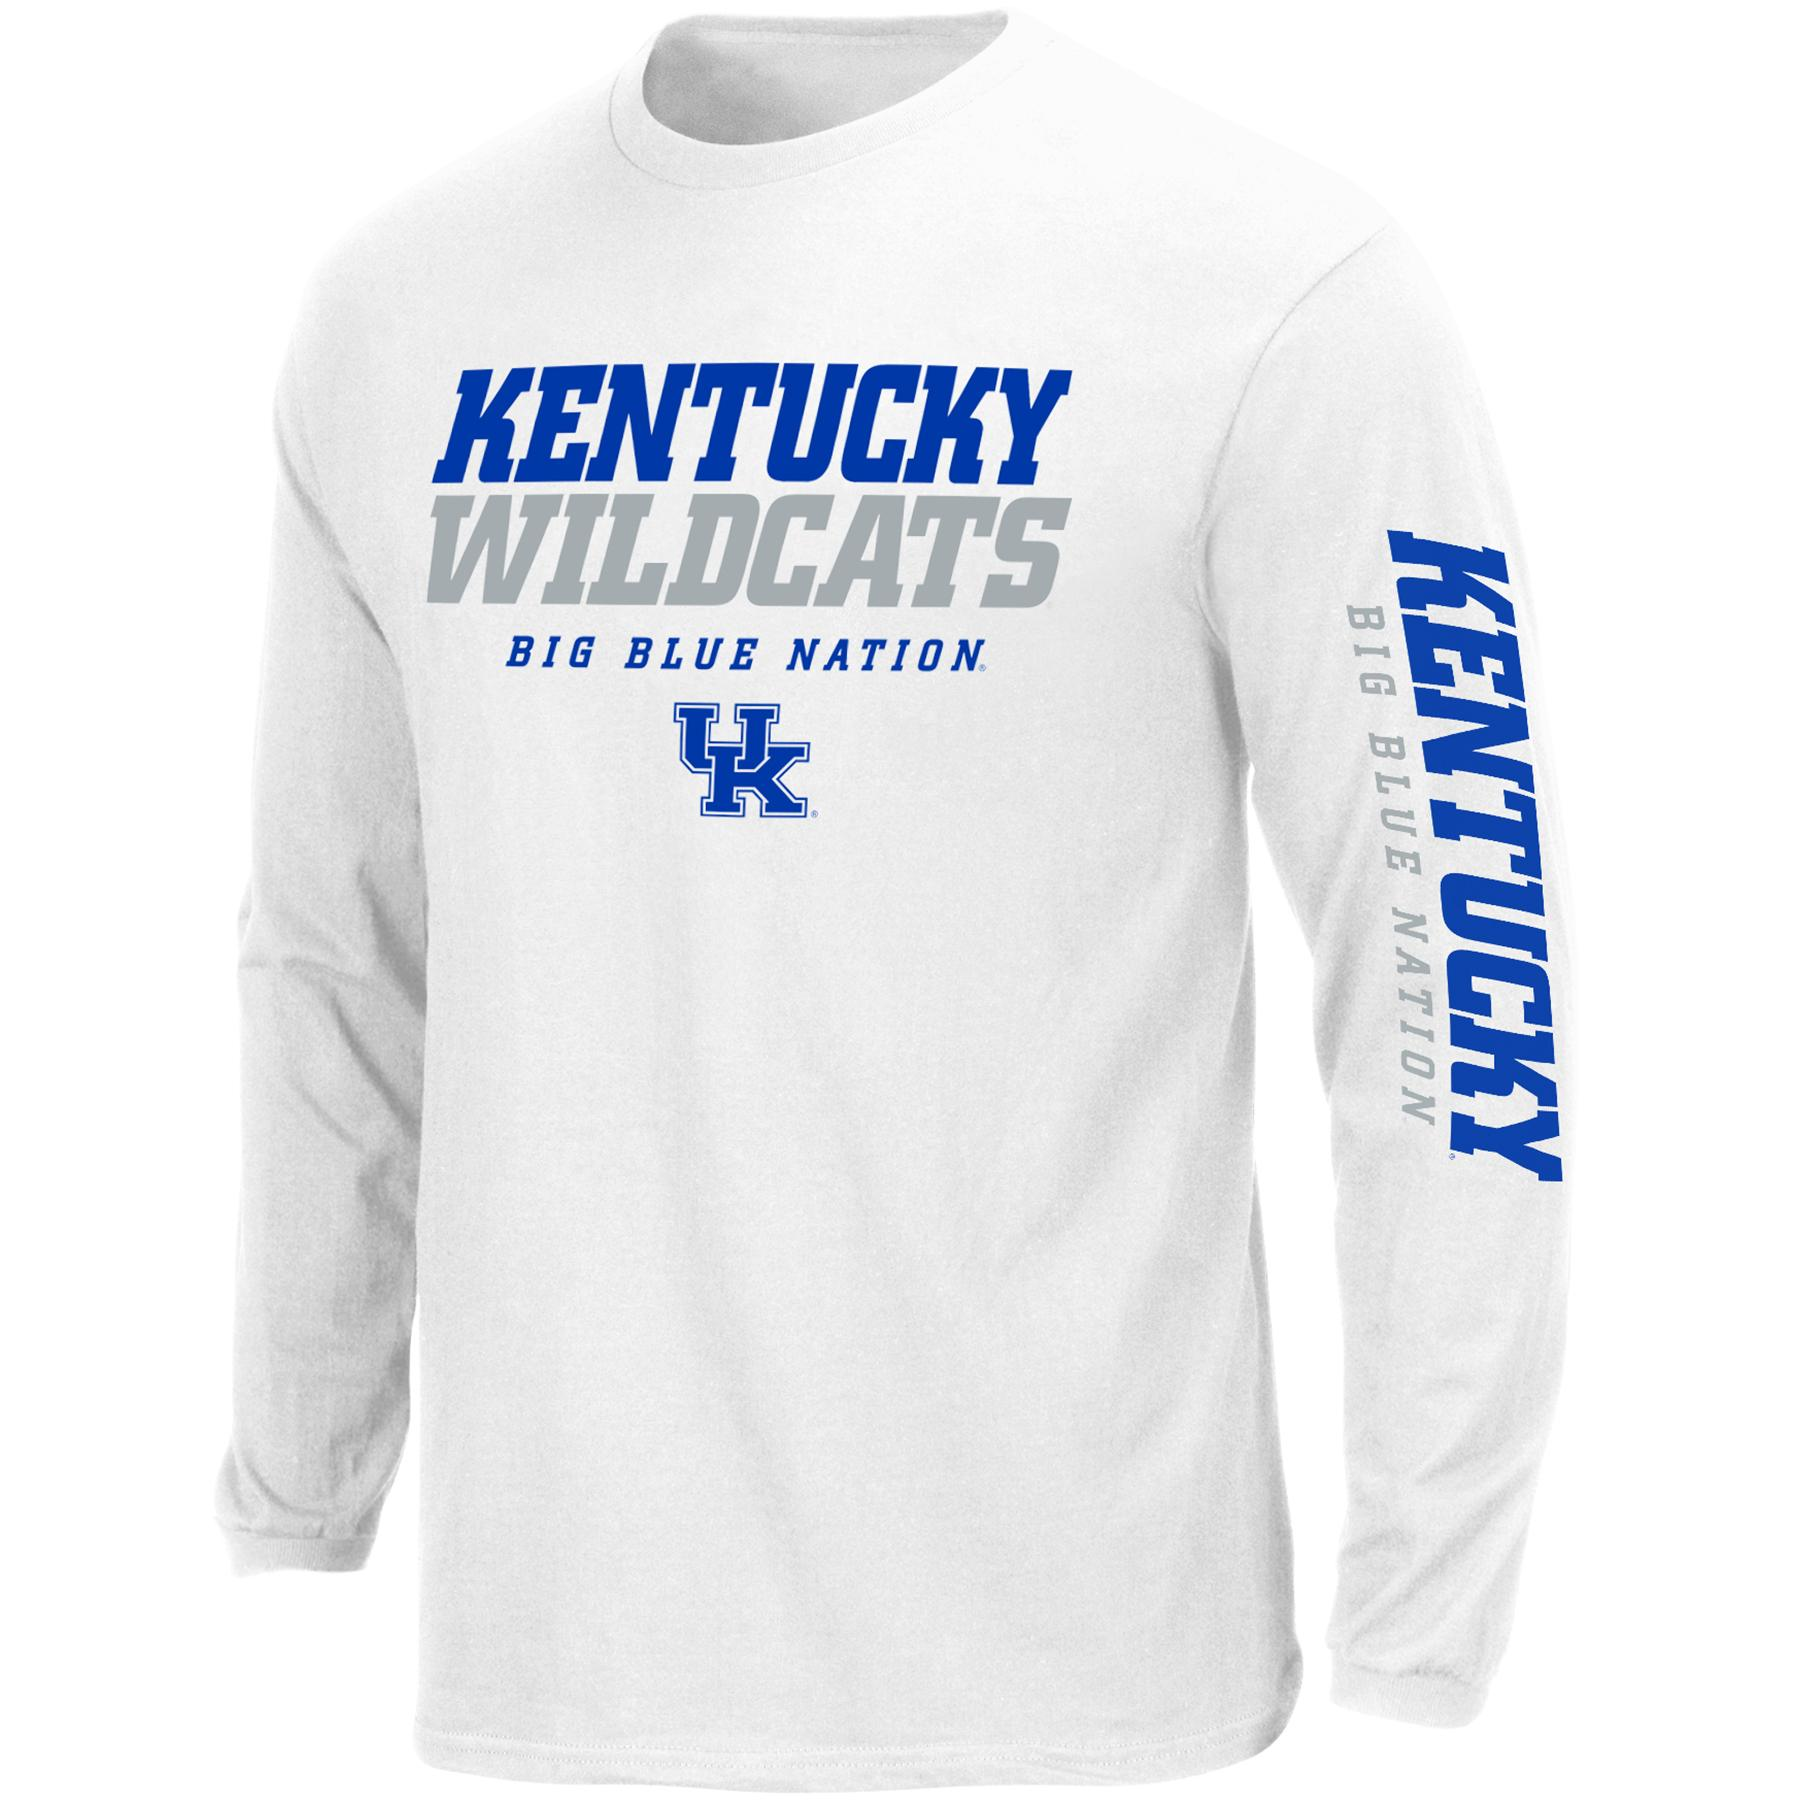 Kentucky Wildcat T Shirt Designs